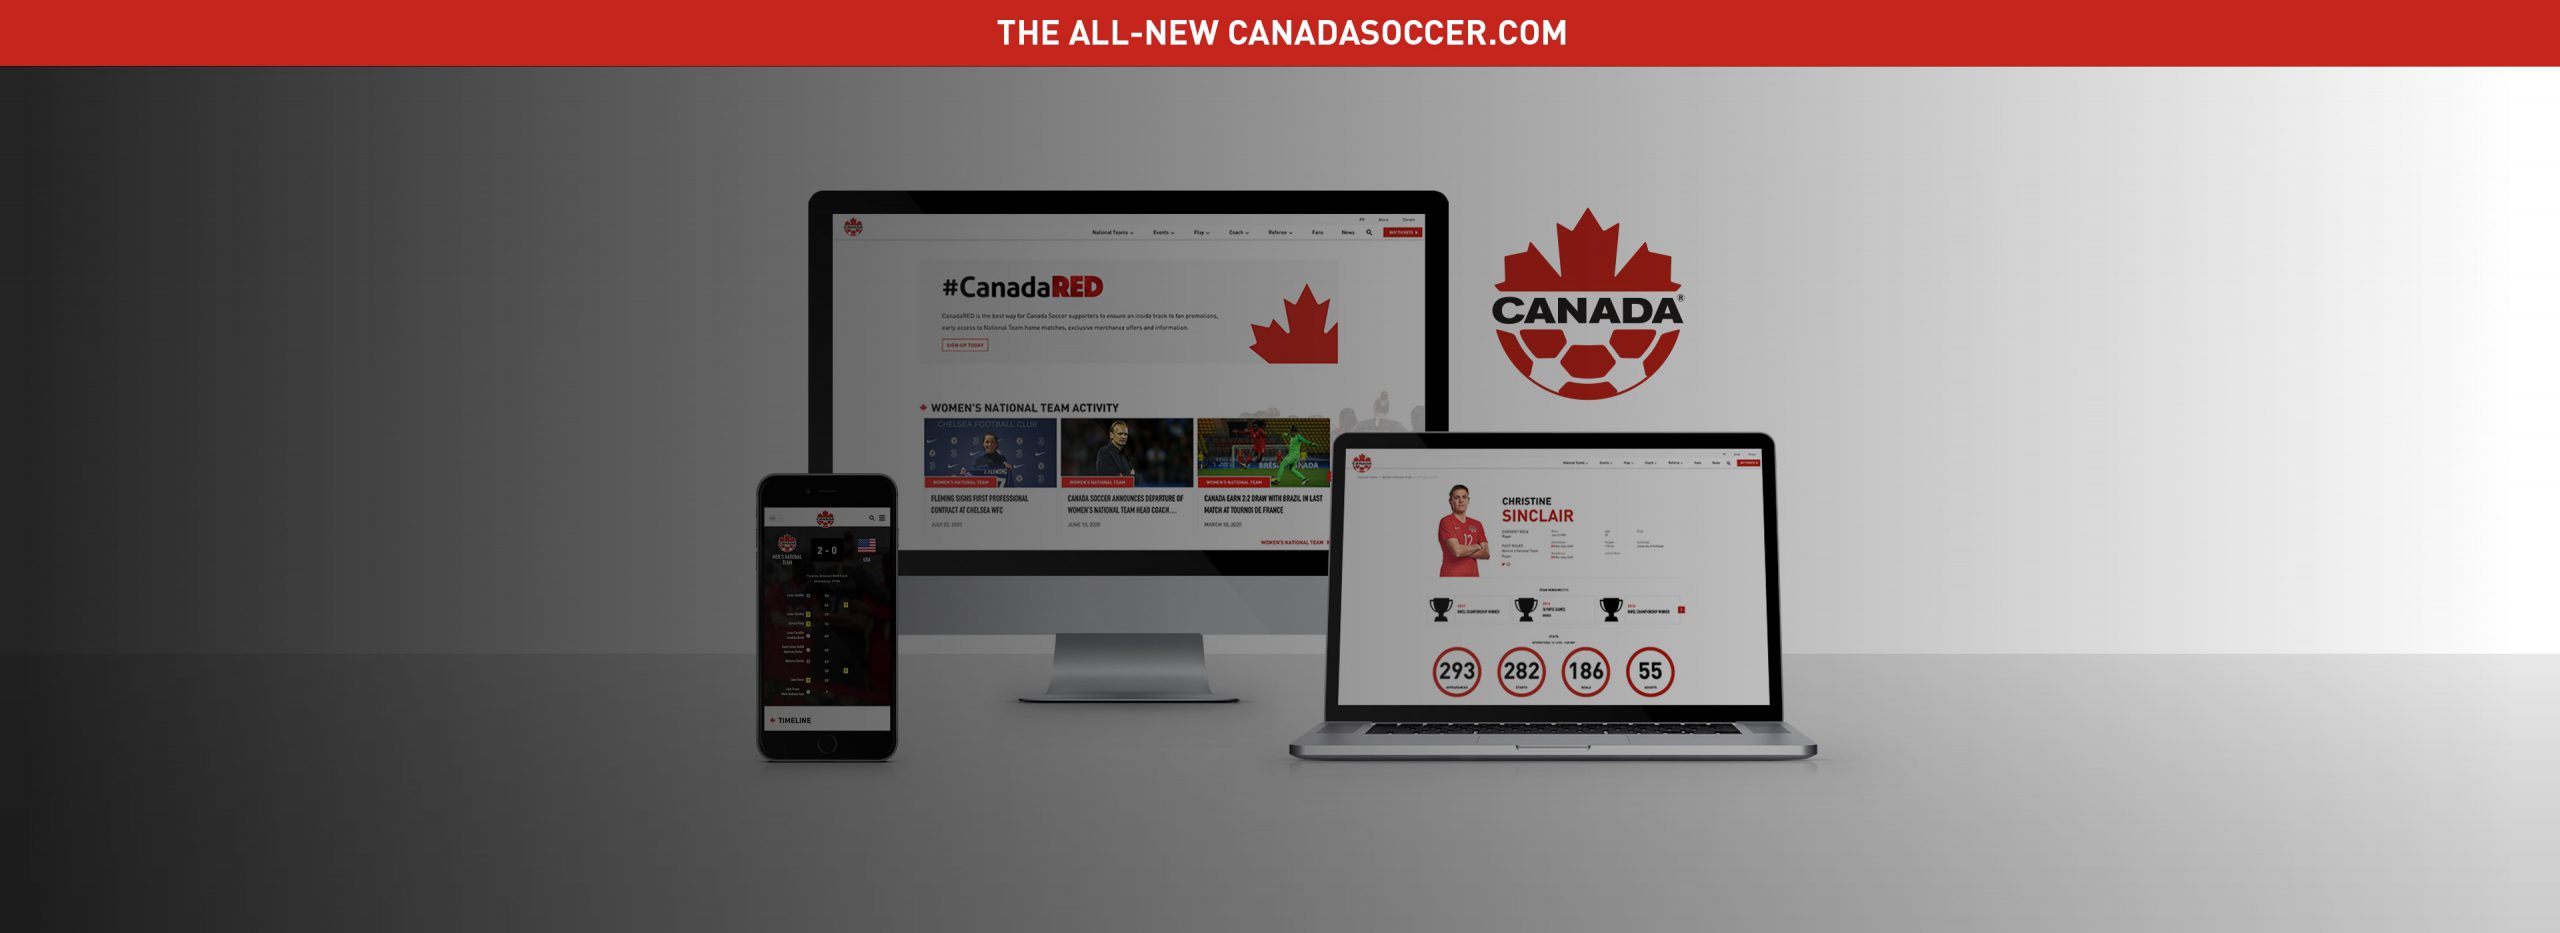 The new canadasoccer.com - Home Page Banner